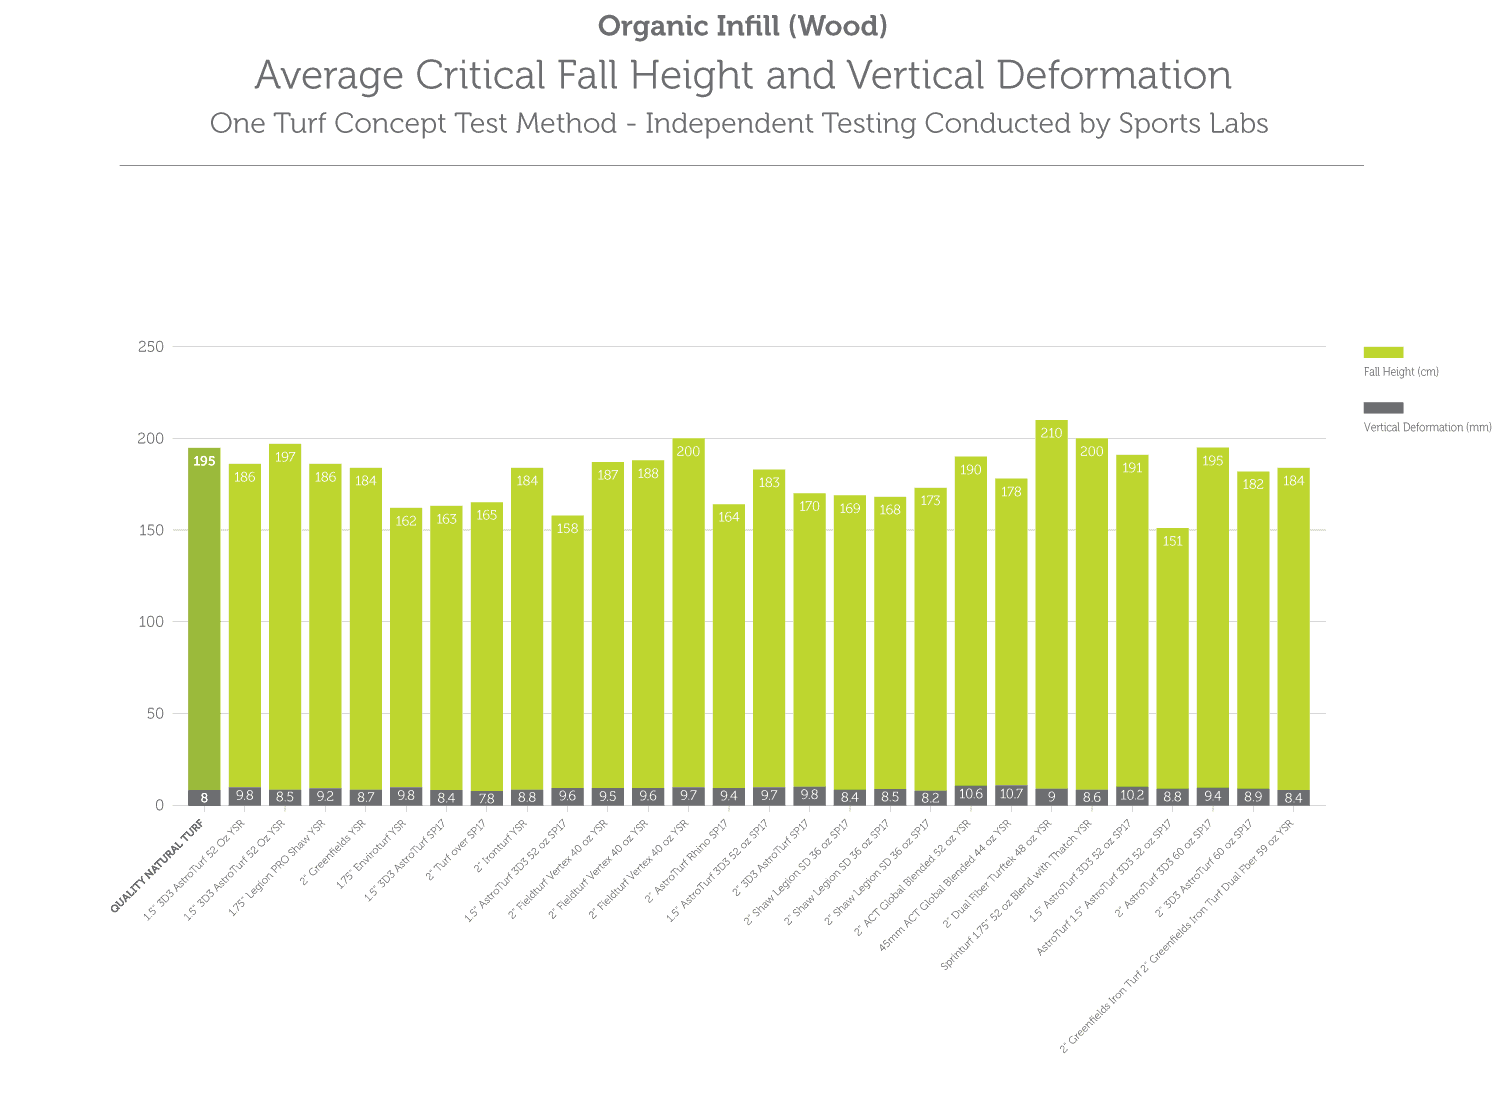 Average Critical Fall Height and Vertical Deformation